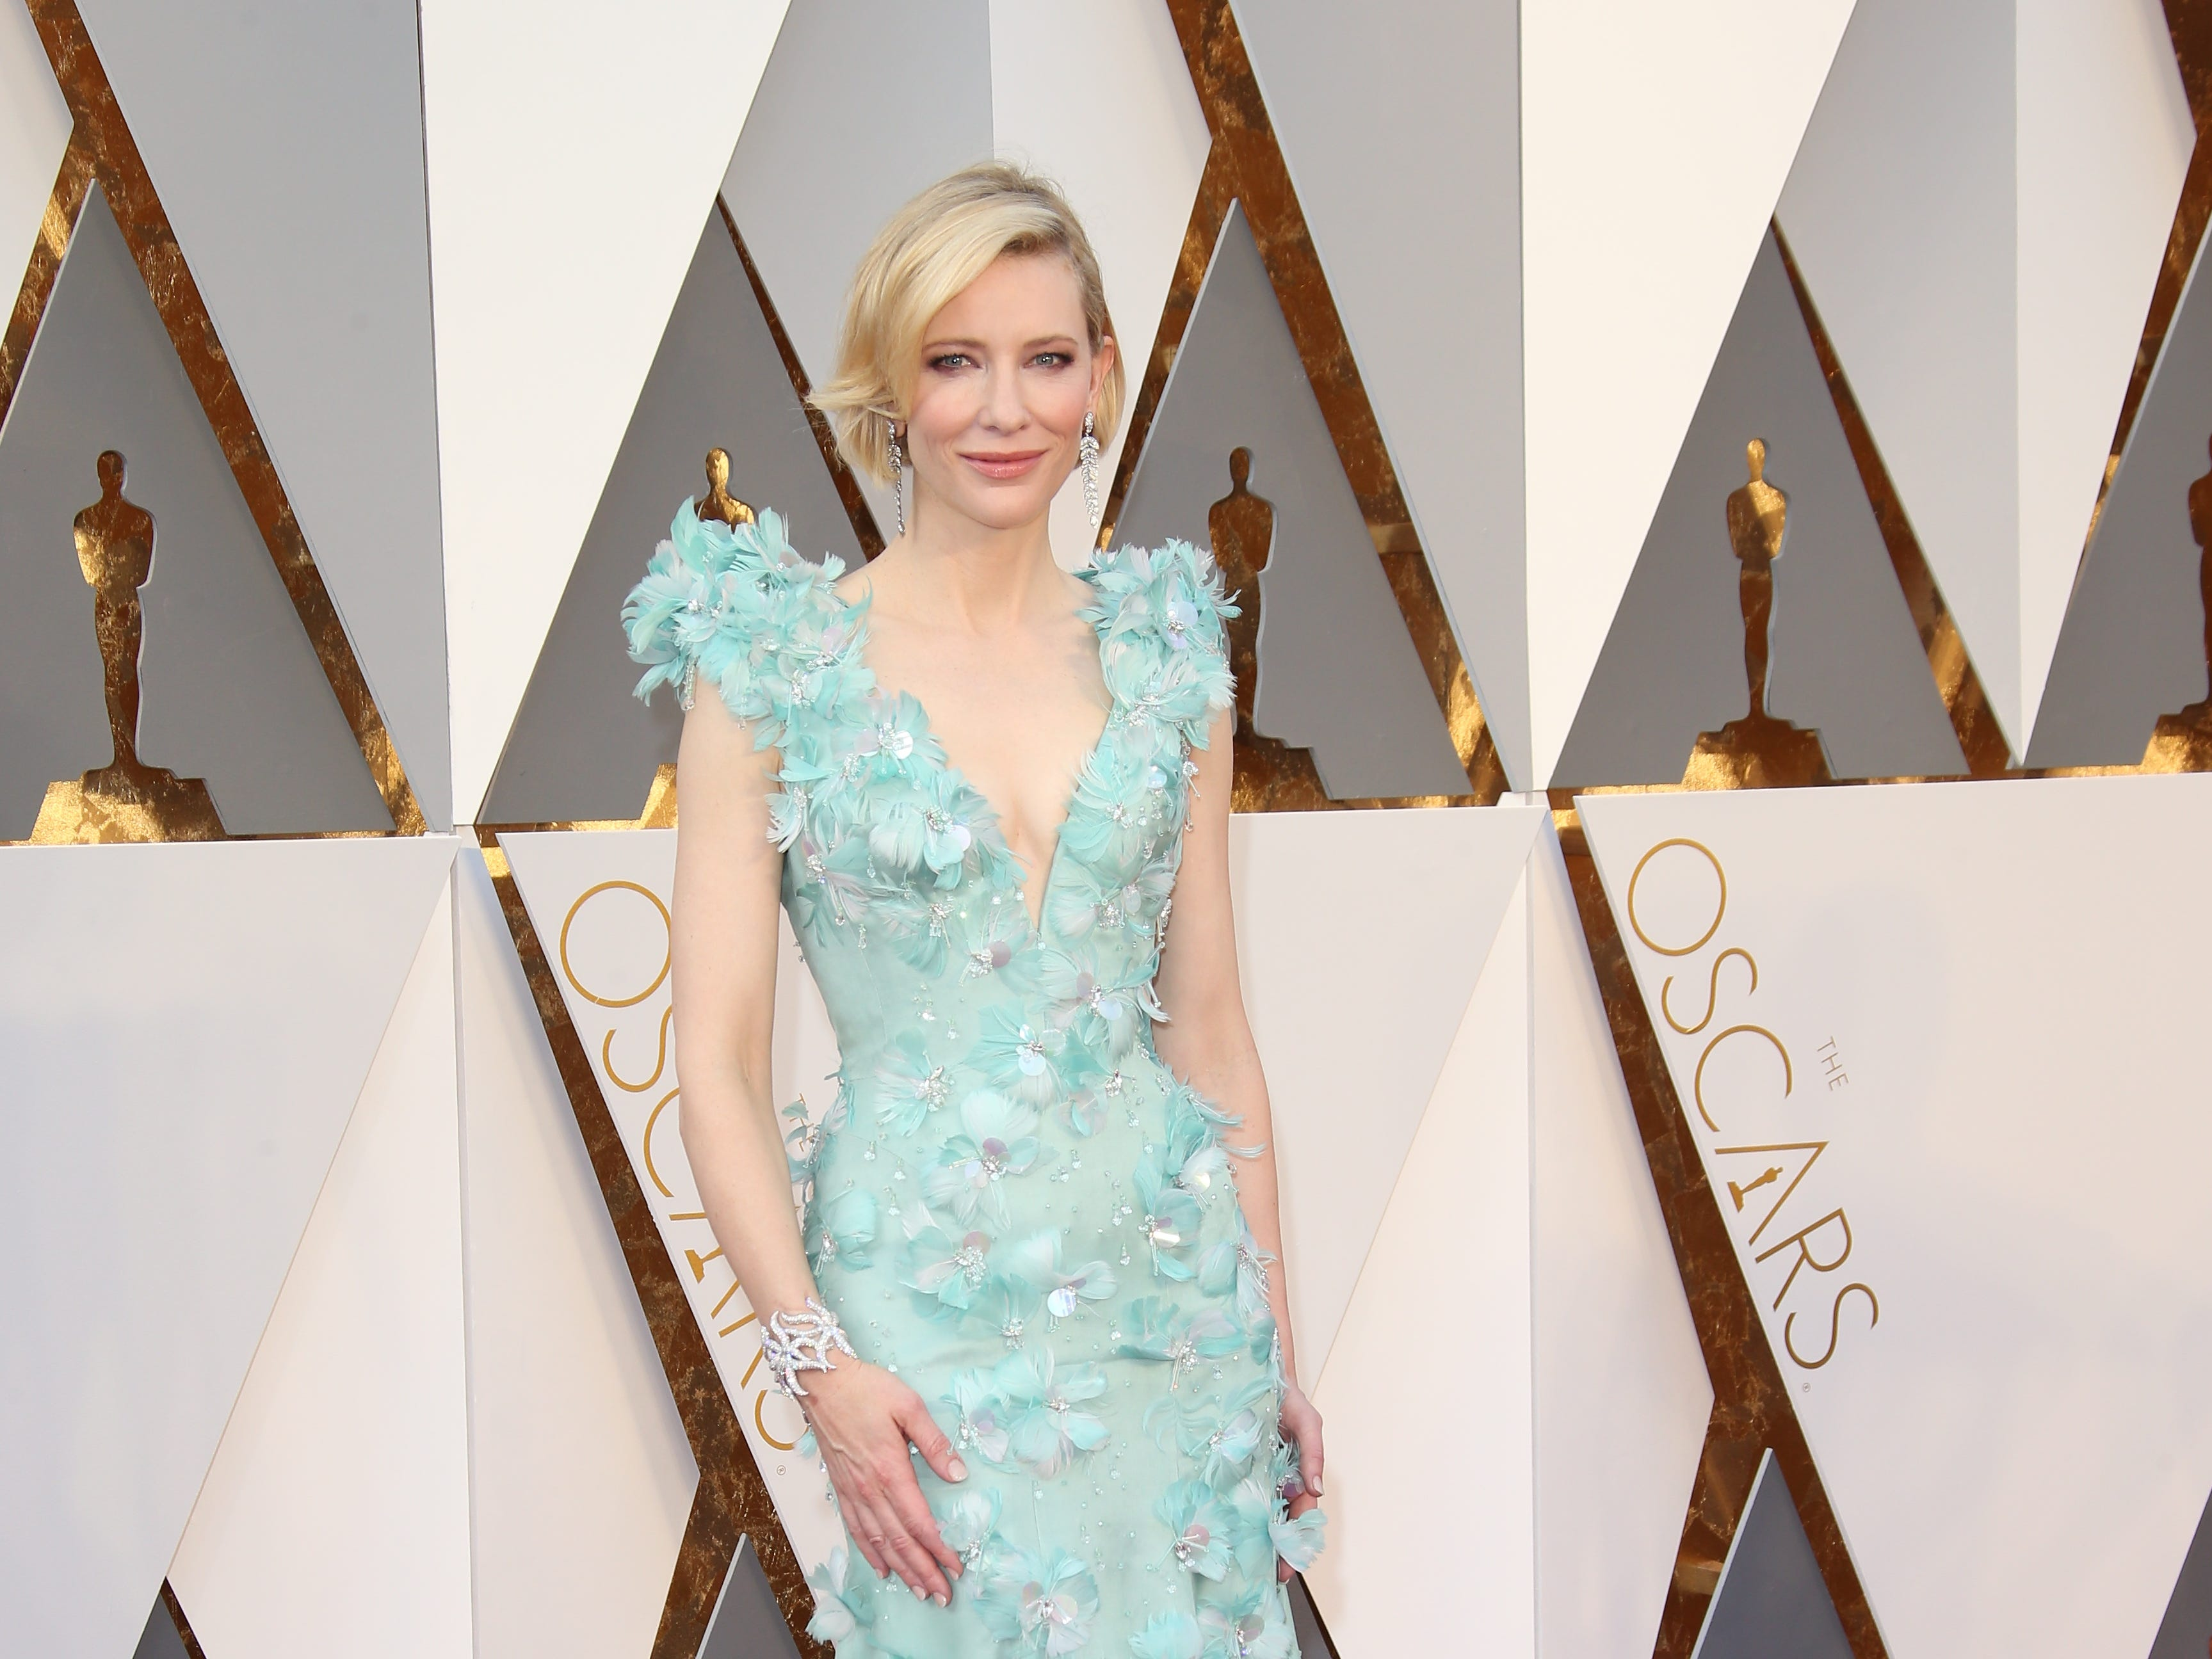 Feb 28, 2016; Hollywood, CA, USA;  Cate Blanchett arrives on the red carpet during the 88th annual Academy Awards at the Dolby Theatre. Mandatory Credit: Dan MacMedan-USA TODAY NETWORK ORG XMIT: USATSI-265242 (Via OlyDrop)